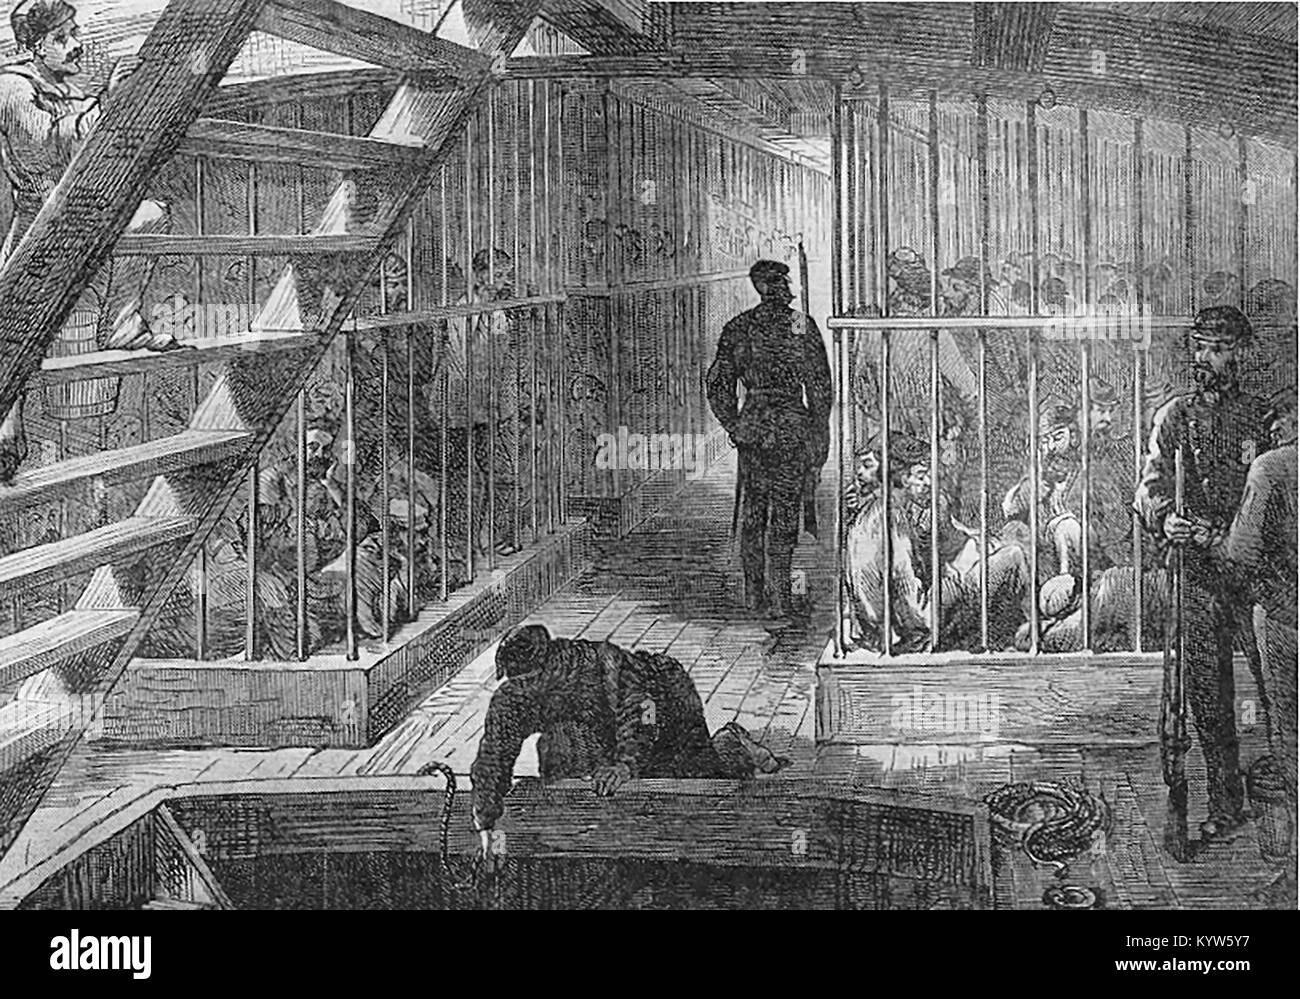 CONVICTS - AUSTRALIA -  Below decks in a typical convict transportation ship - Stock Image